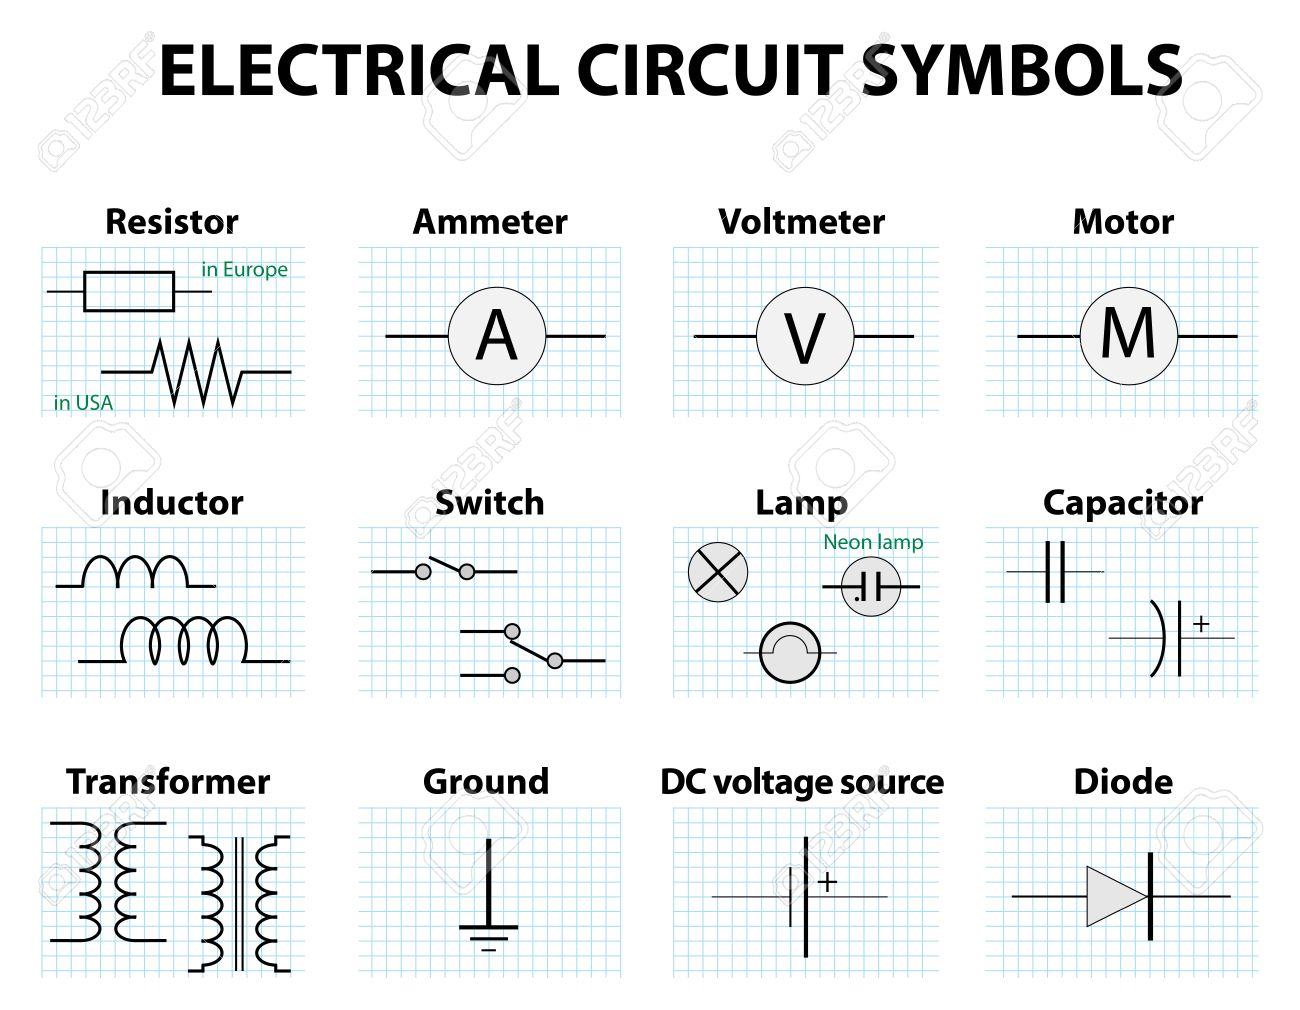 How to wire from winch to solenoid to switch ehow 2016 2016 car - Basic Wiring Symbols Basic Image Wiring Diagram Electric Wiring Symbols Electric Auto Wiring Diagram Schematic On